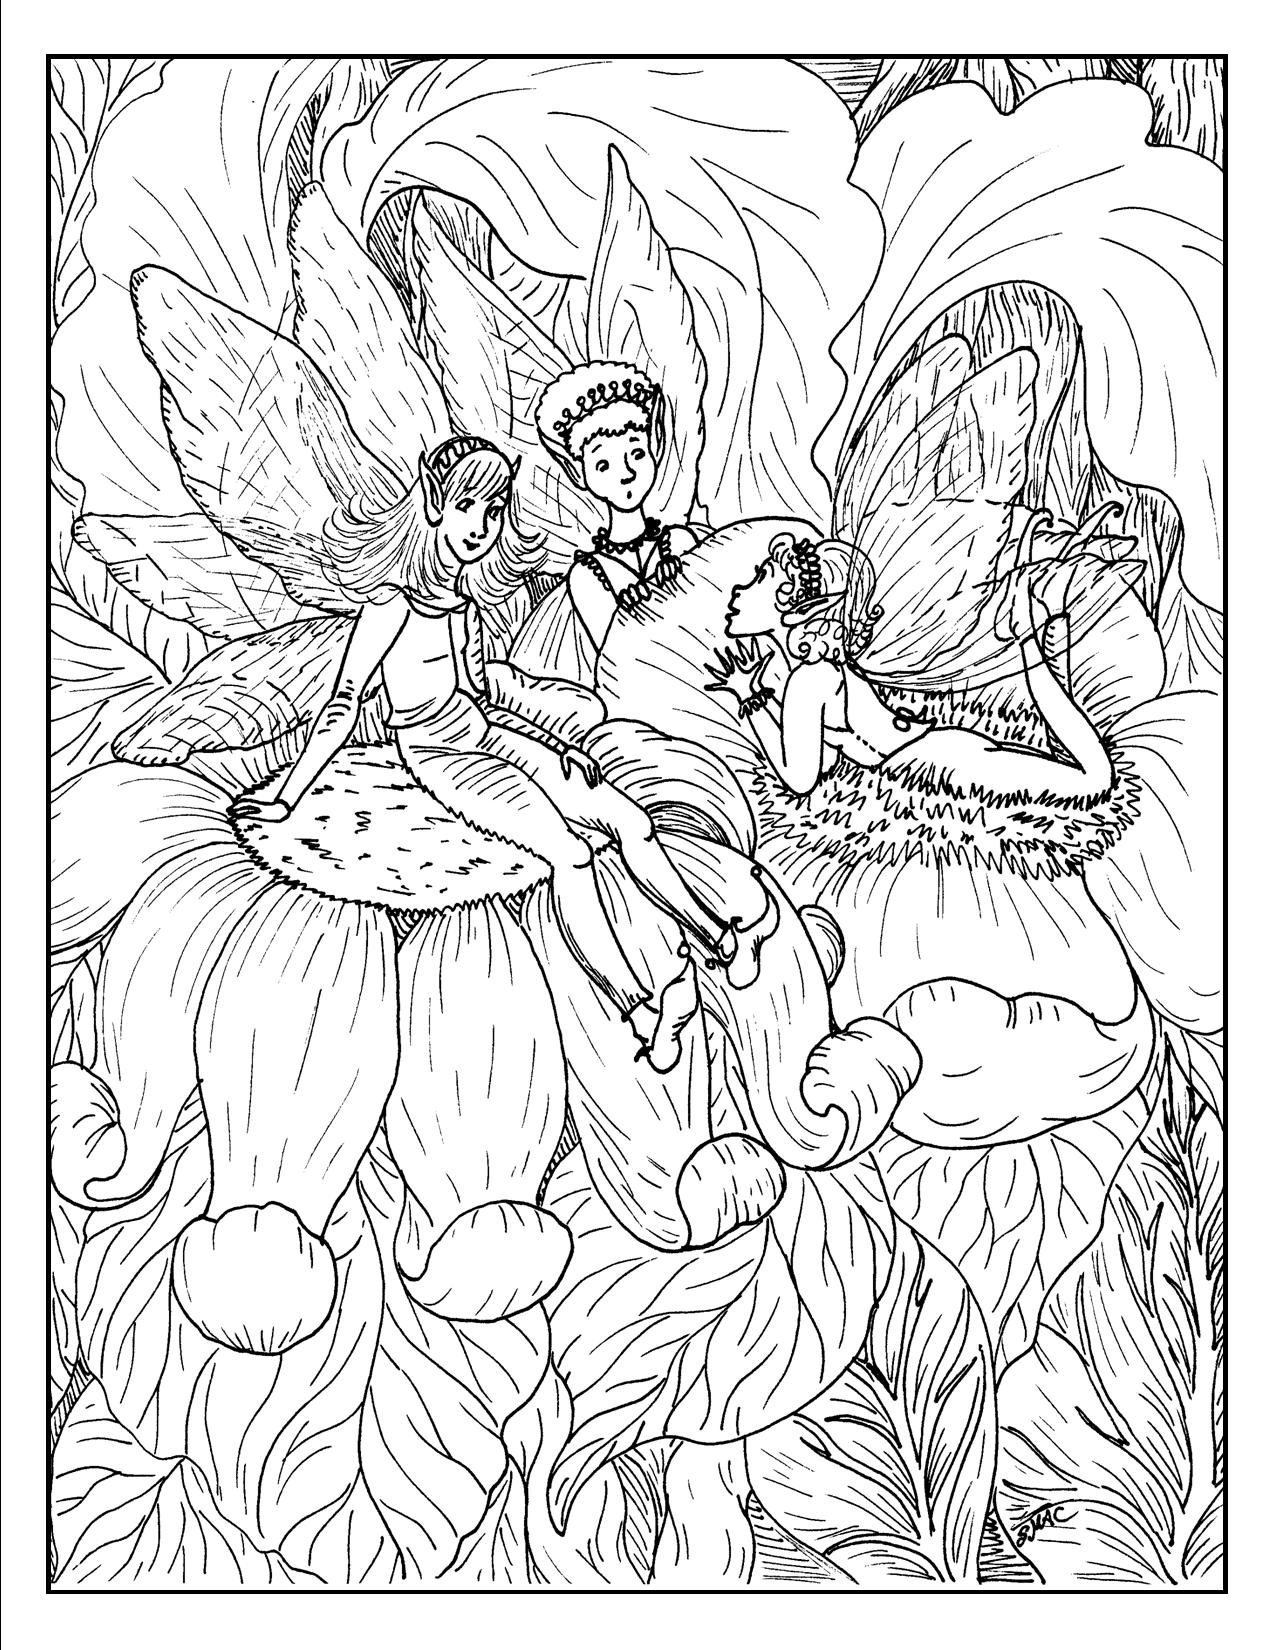 Fantasy Coloring Pages - S.Mac's Place to Be